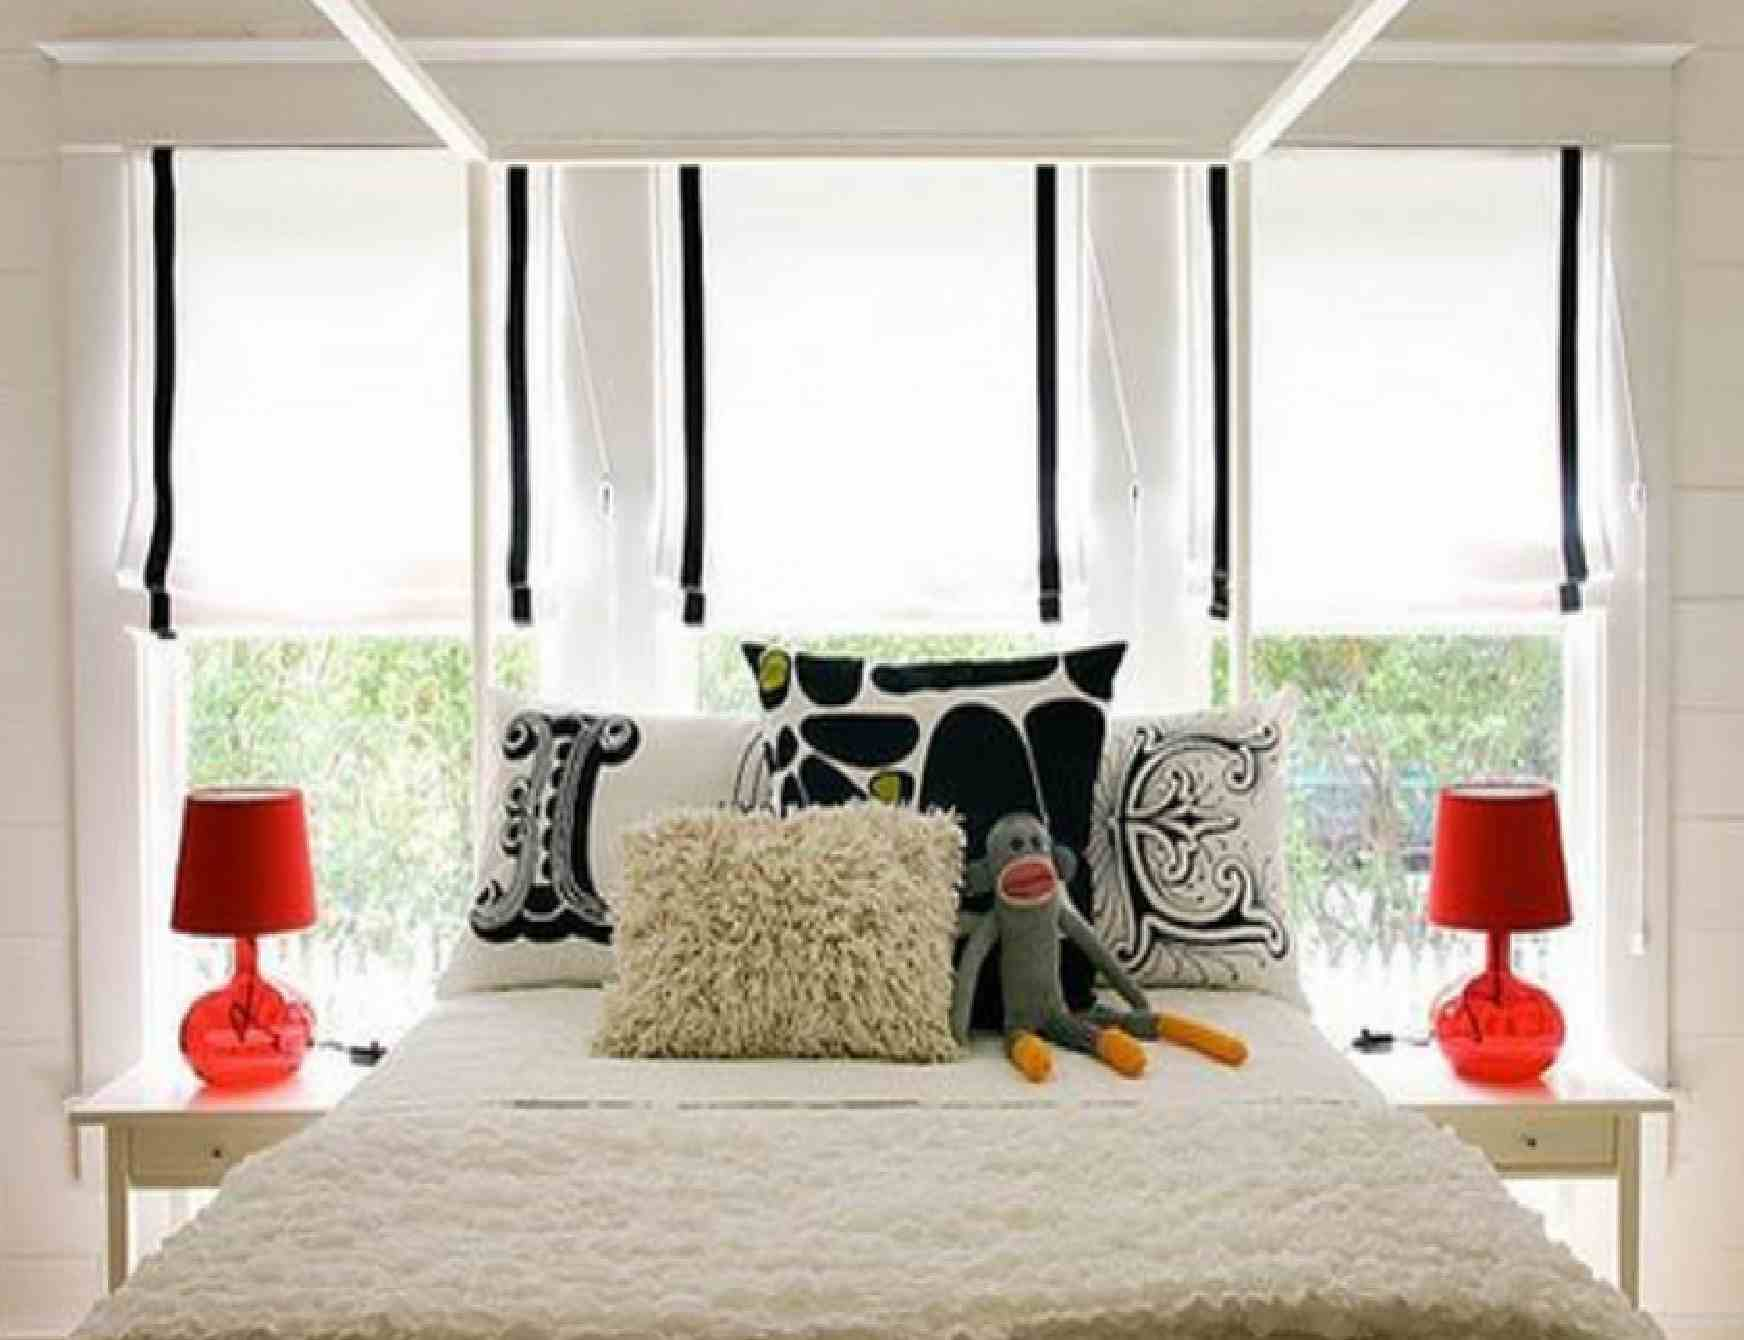 Futuristic Cool Interior Design With Wonderful Lightings: Warm Fur Quilt Cute Doll Cool Interior Design Red Table Lamps